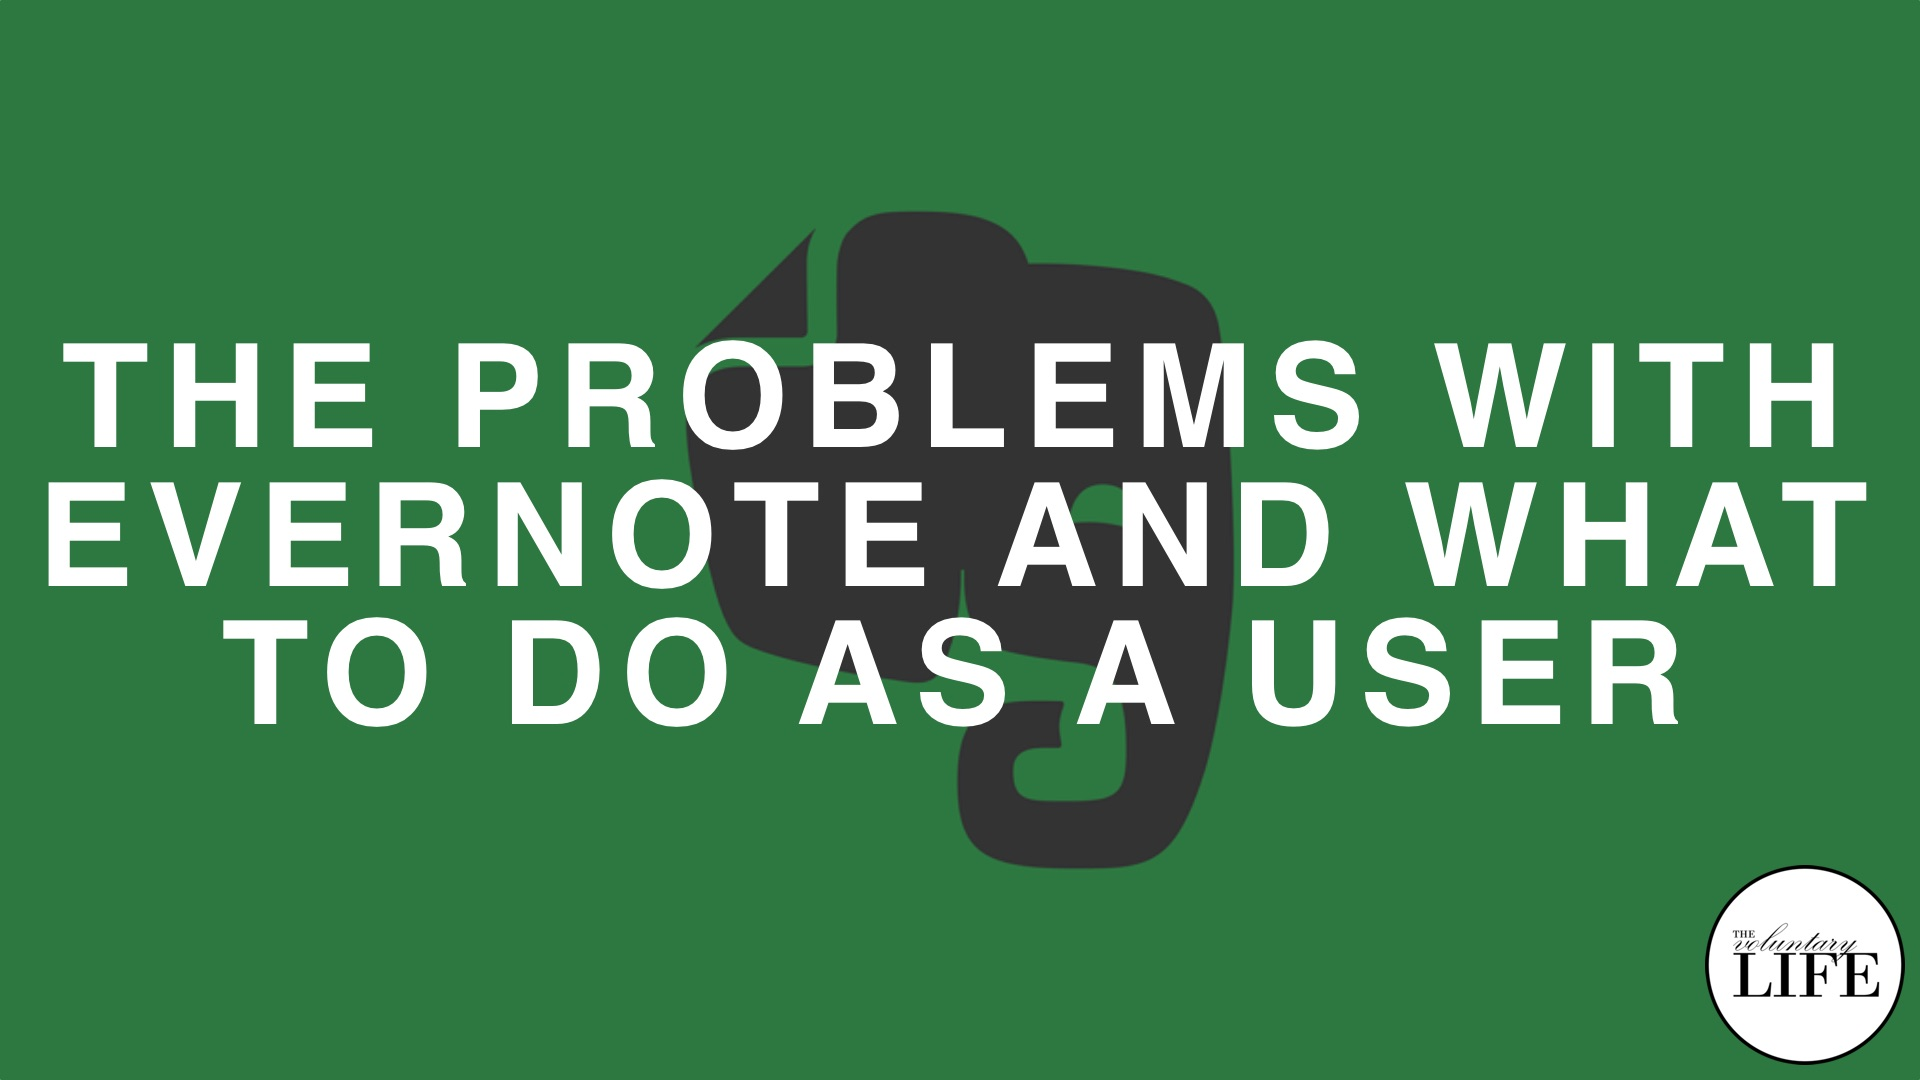 Bonus Episode 69: The Problems With Evernote And What To Do As A User